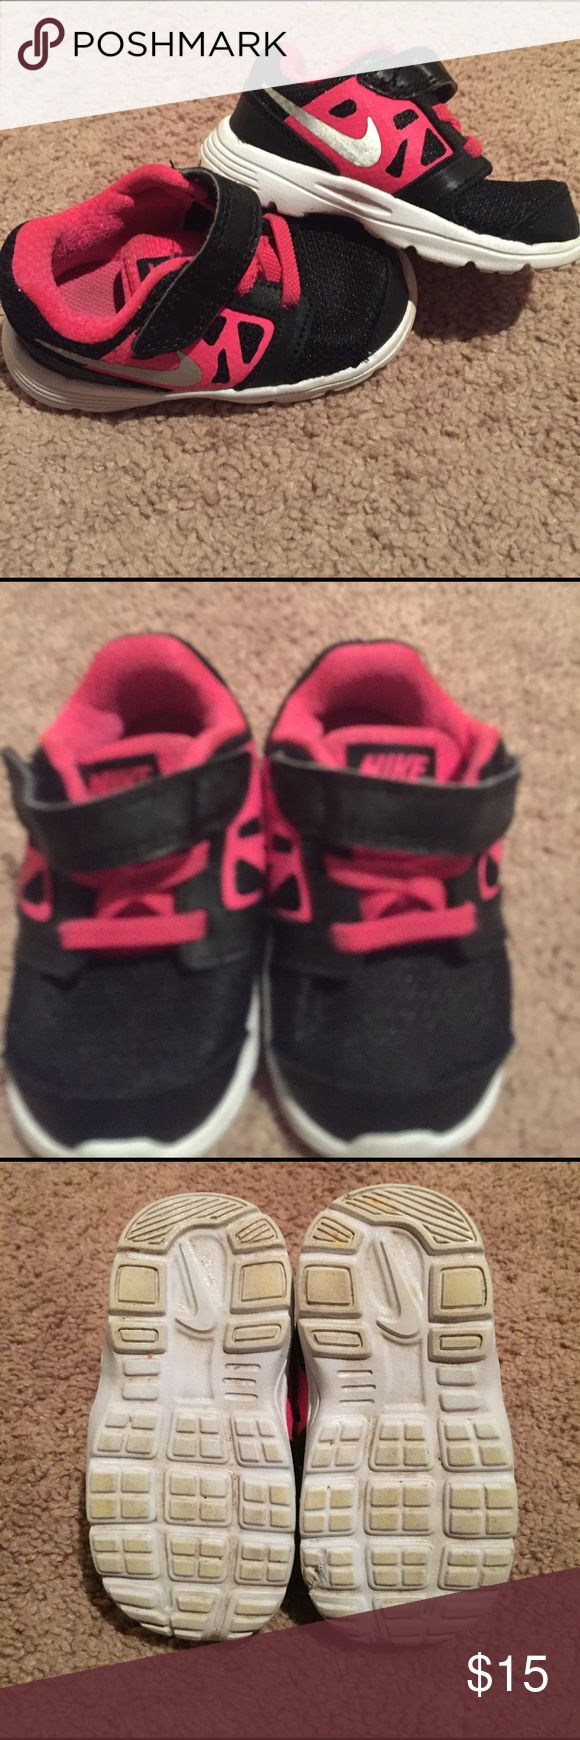 check out 4fa90 45976 Nike Toddler Downshifter 6 Running Shoes ...